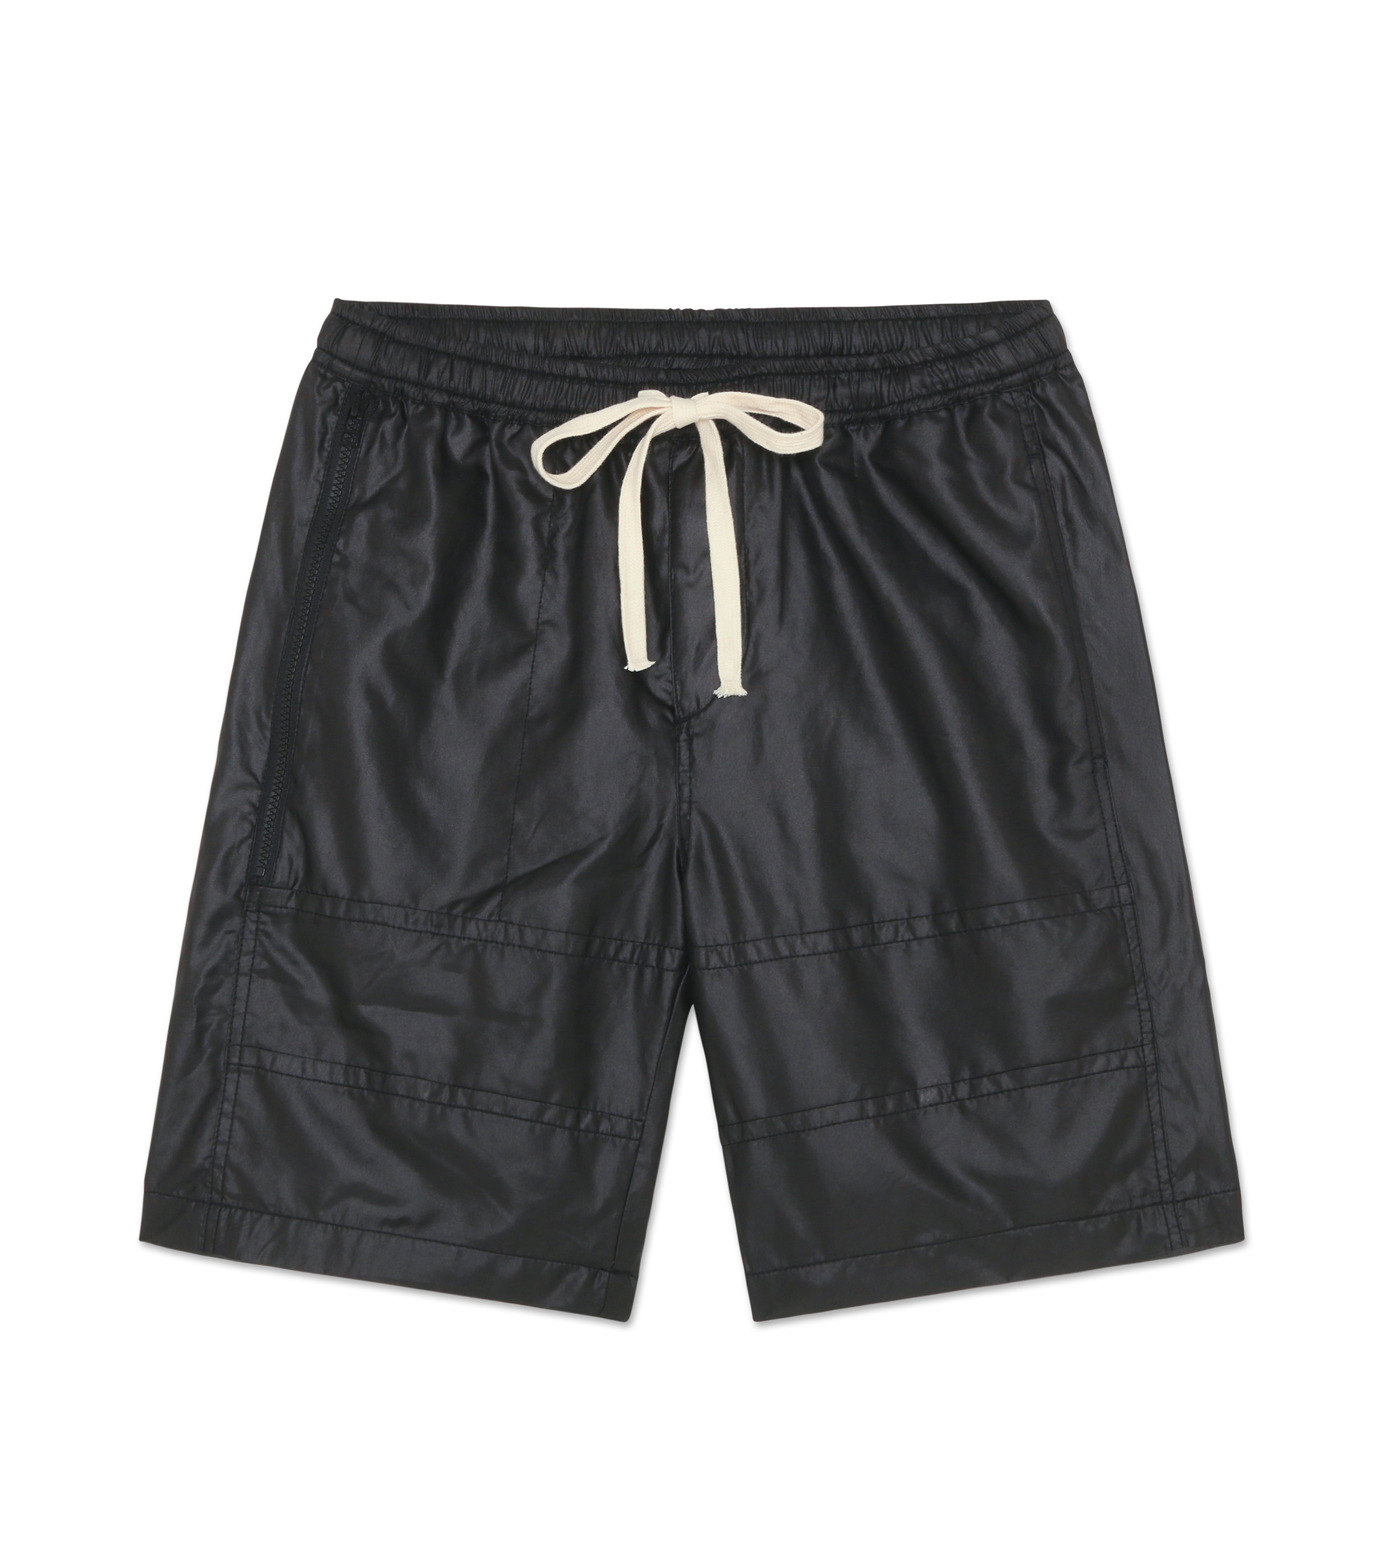 HEY YOU !(ヘイユウ)のWASHED TWILL SHORTS-BLACK(SWIMWEAR/SWIMWEAR)-18S98011-13 拡大詳細画像2